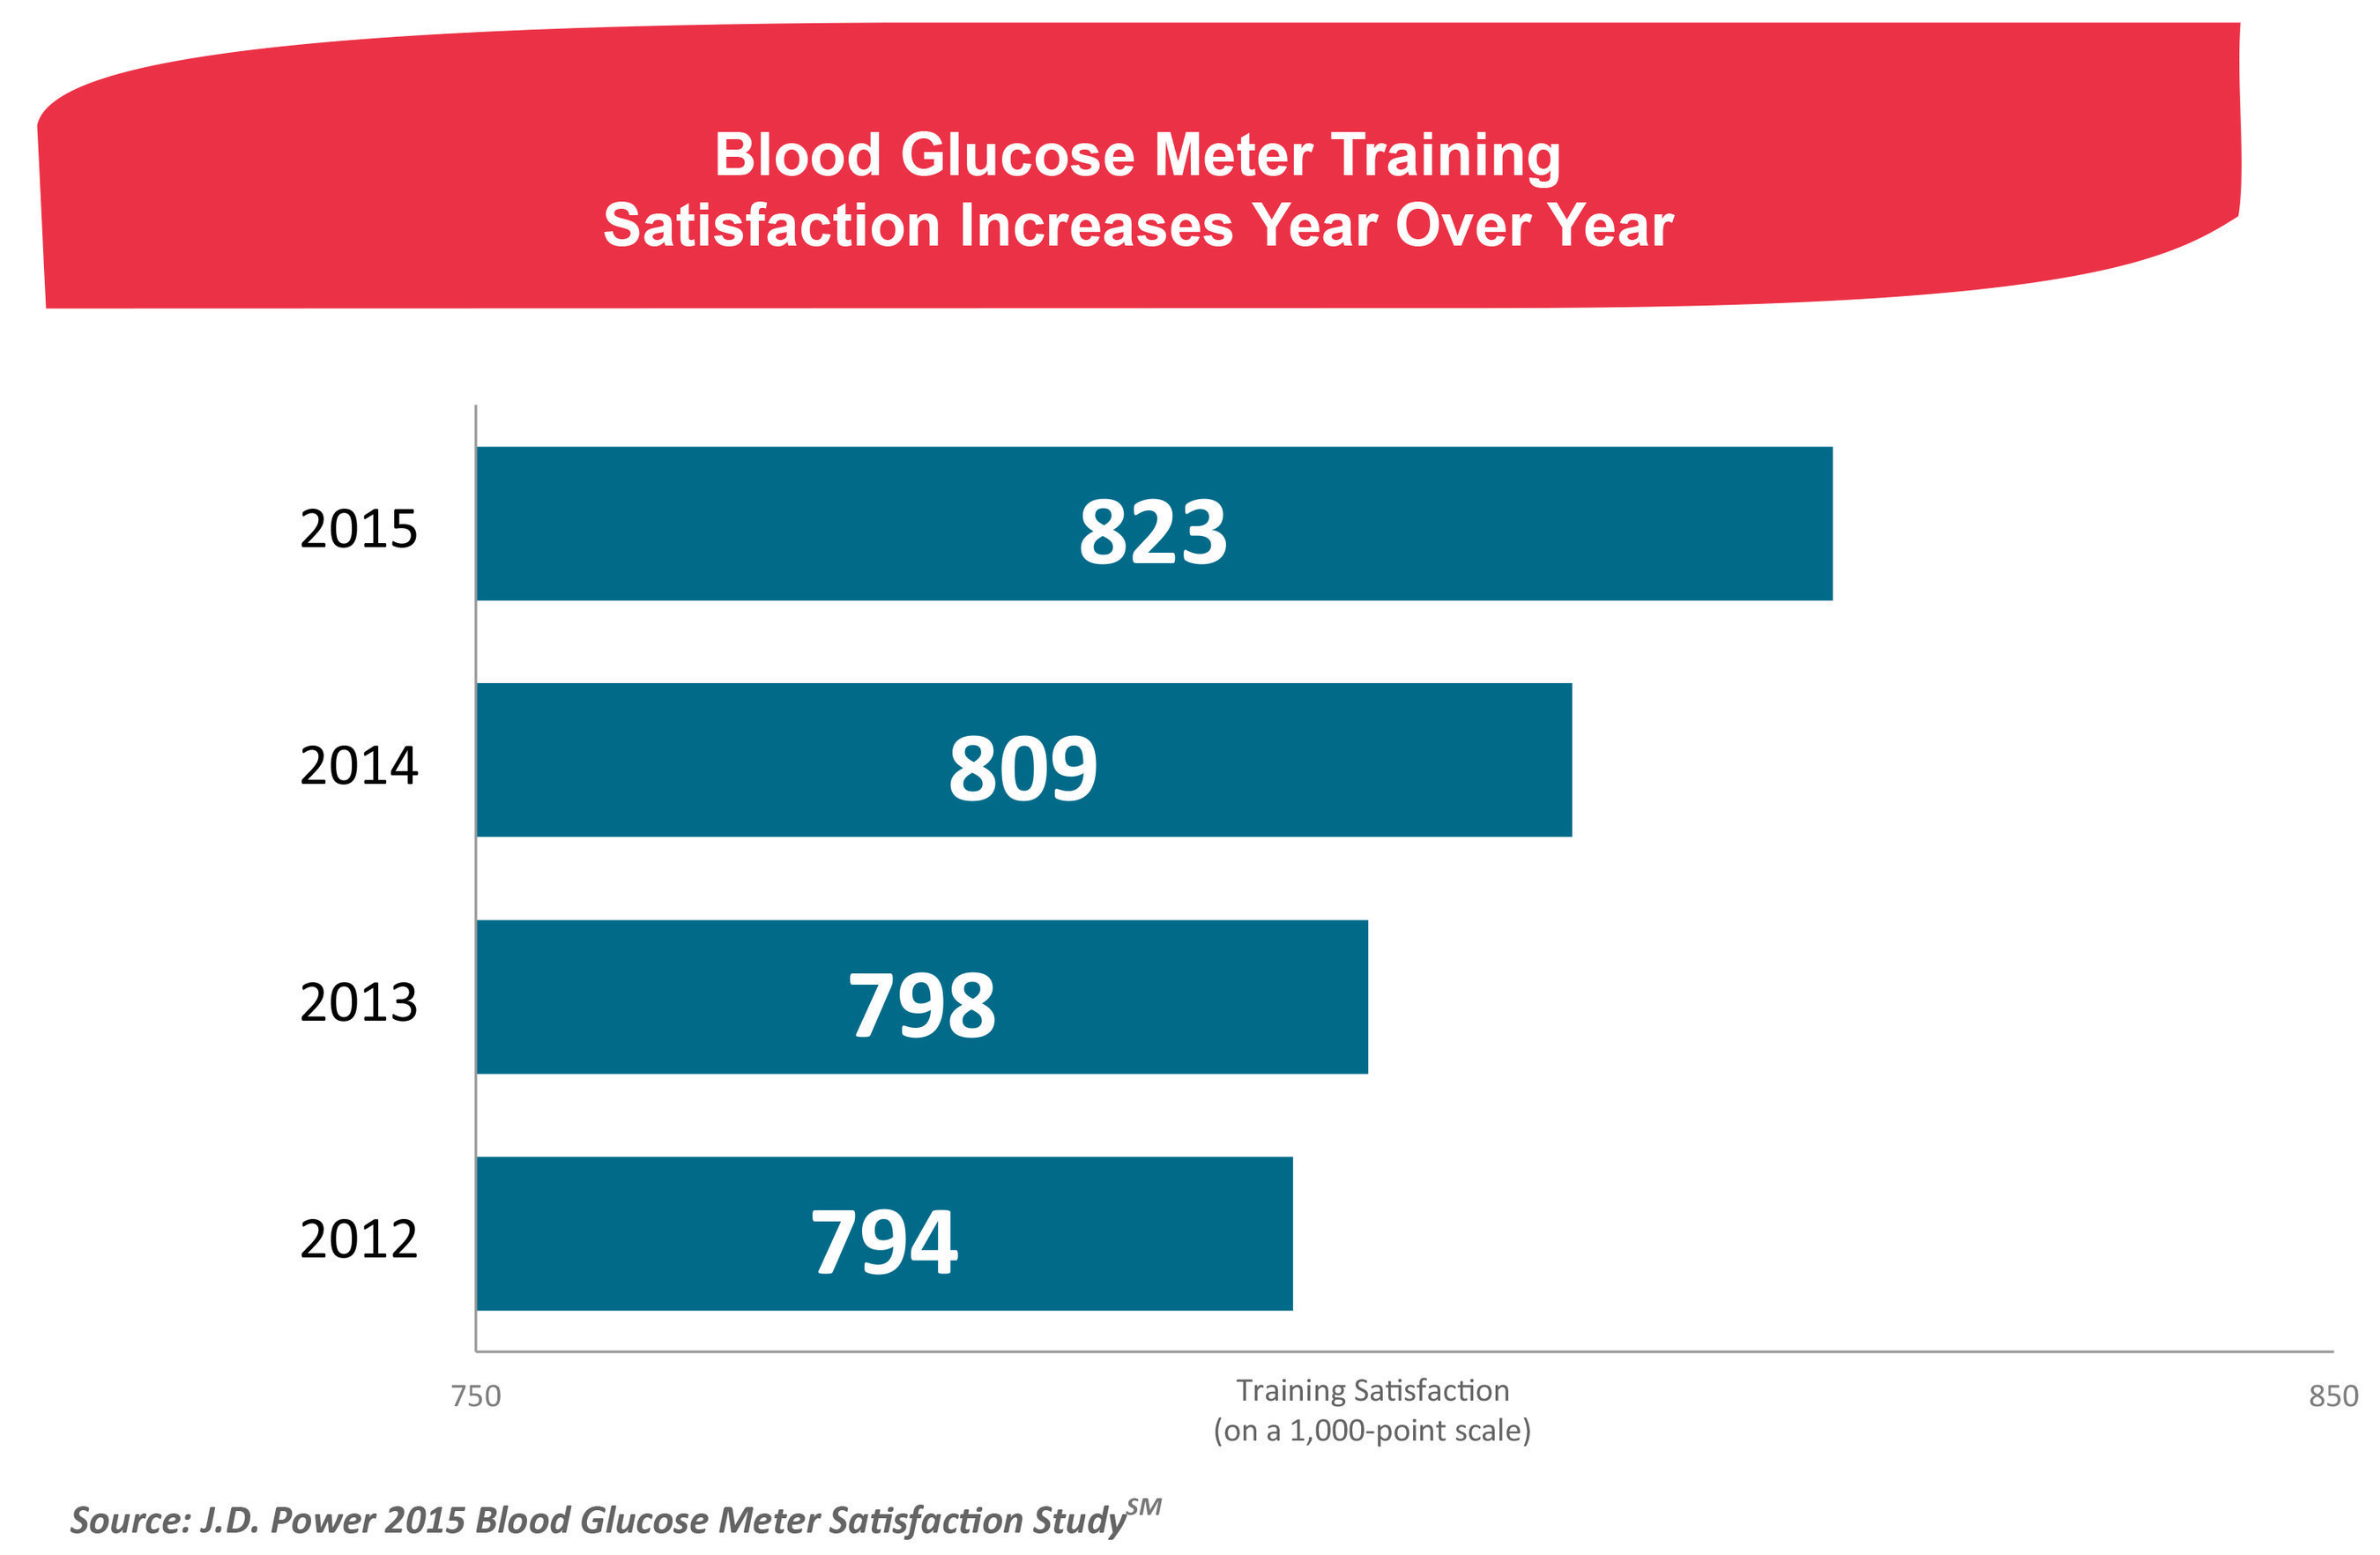 Blood Glucose Meter Training Satisfaction Increases Year Over Year